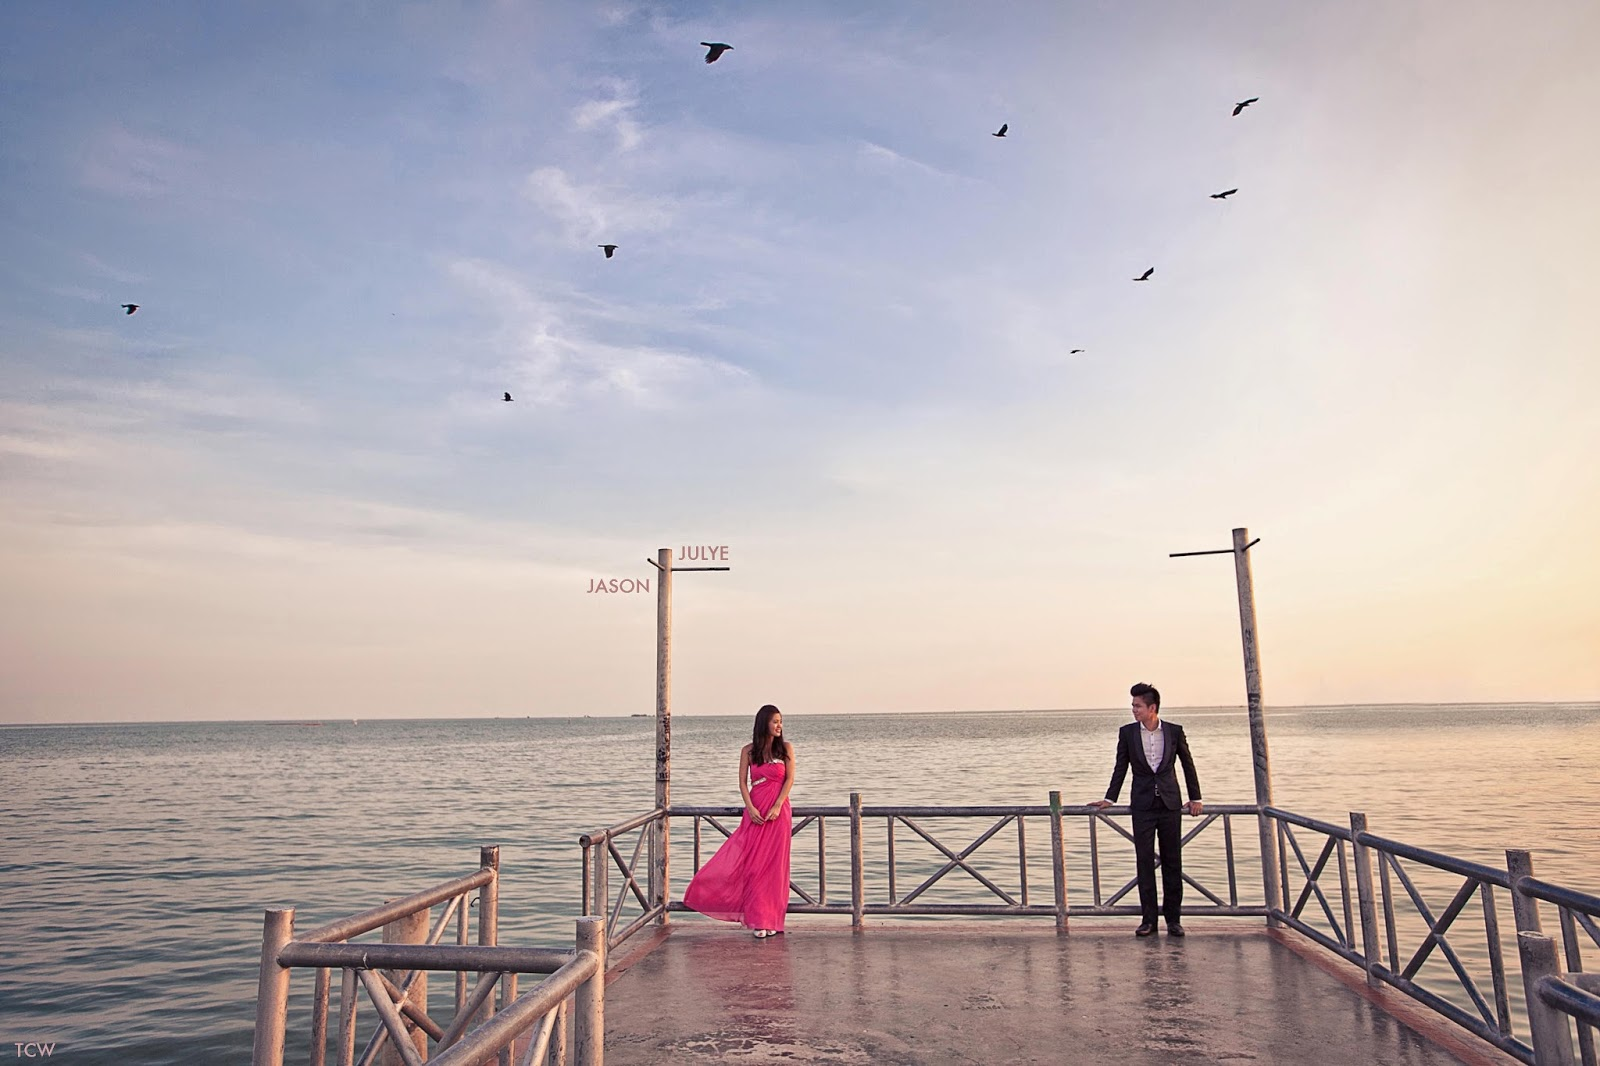 Pre-wedding photoshoot in Malacca. Photo by TCW Photography